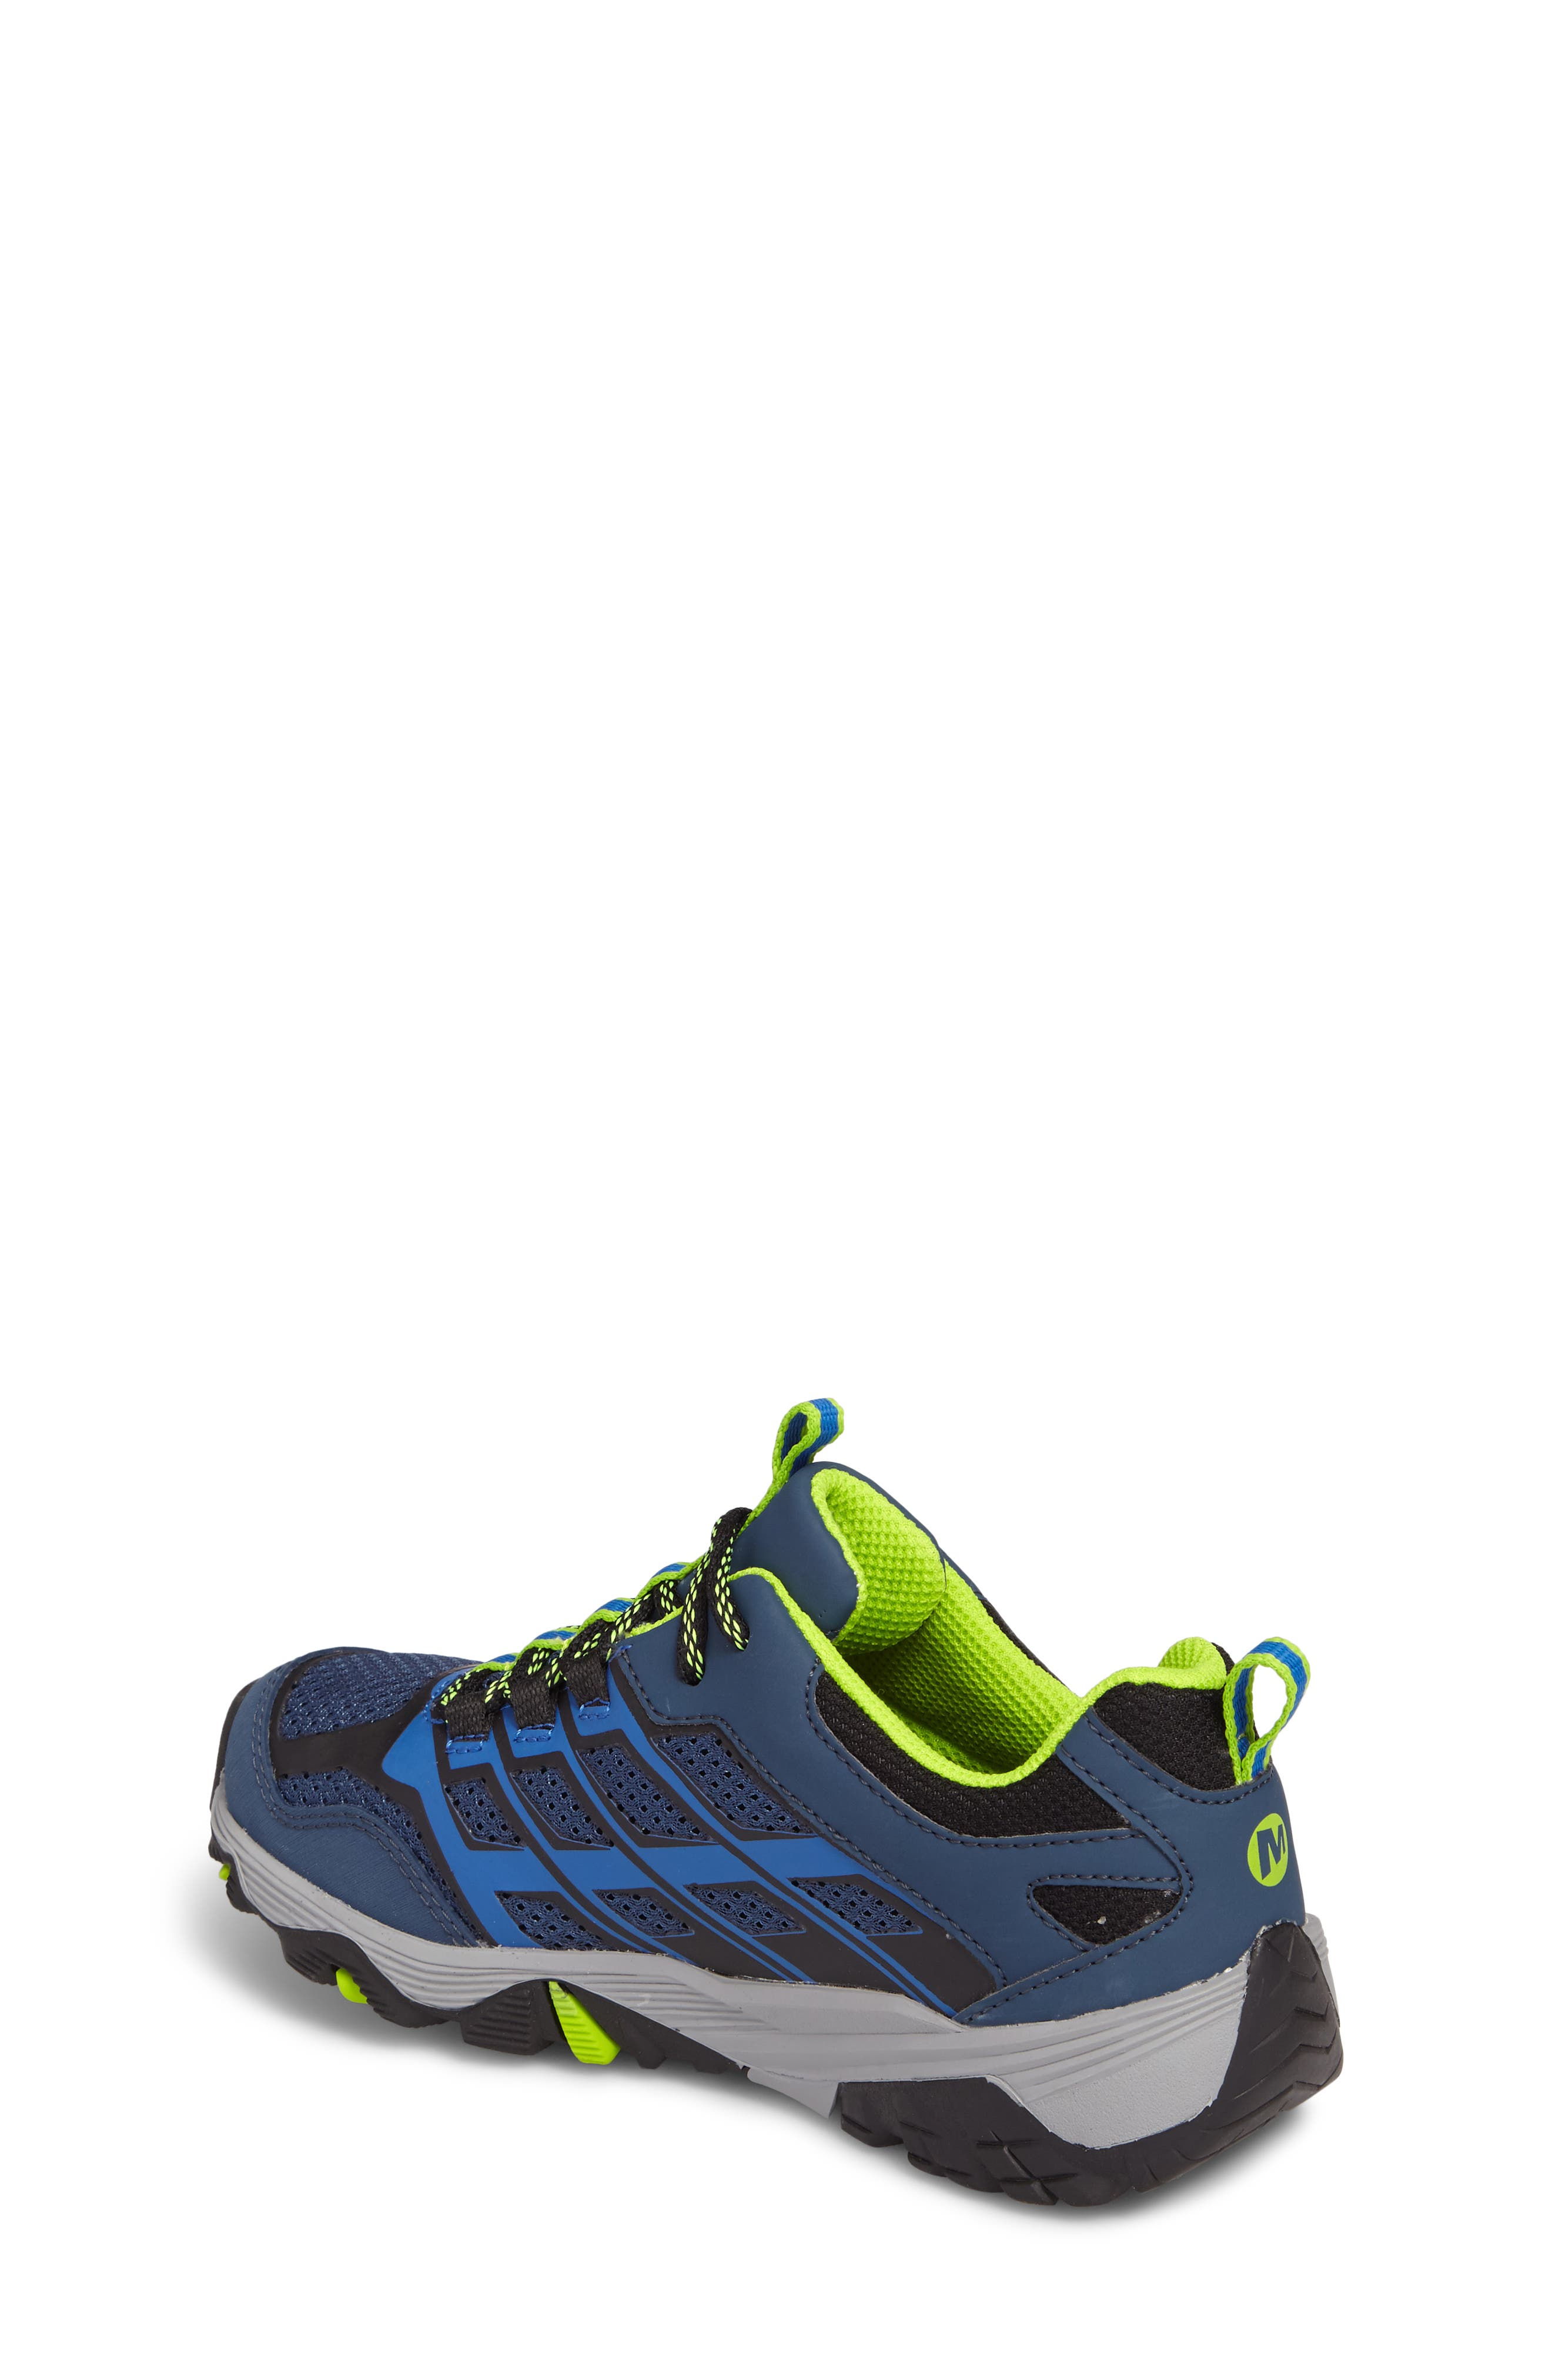 Moab FST Polar Low Waterproof Sneaker,                             Alternate thumbnail 2, color,                             Navy/ Blue